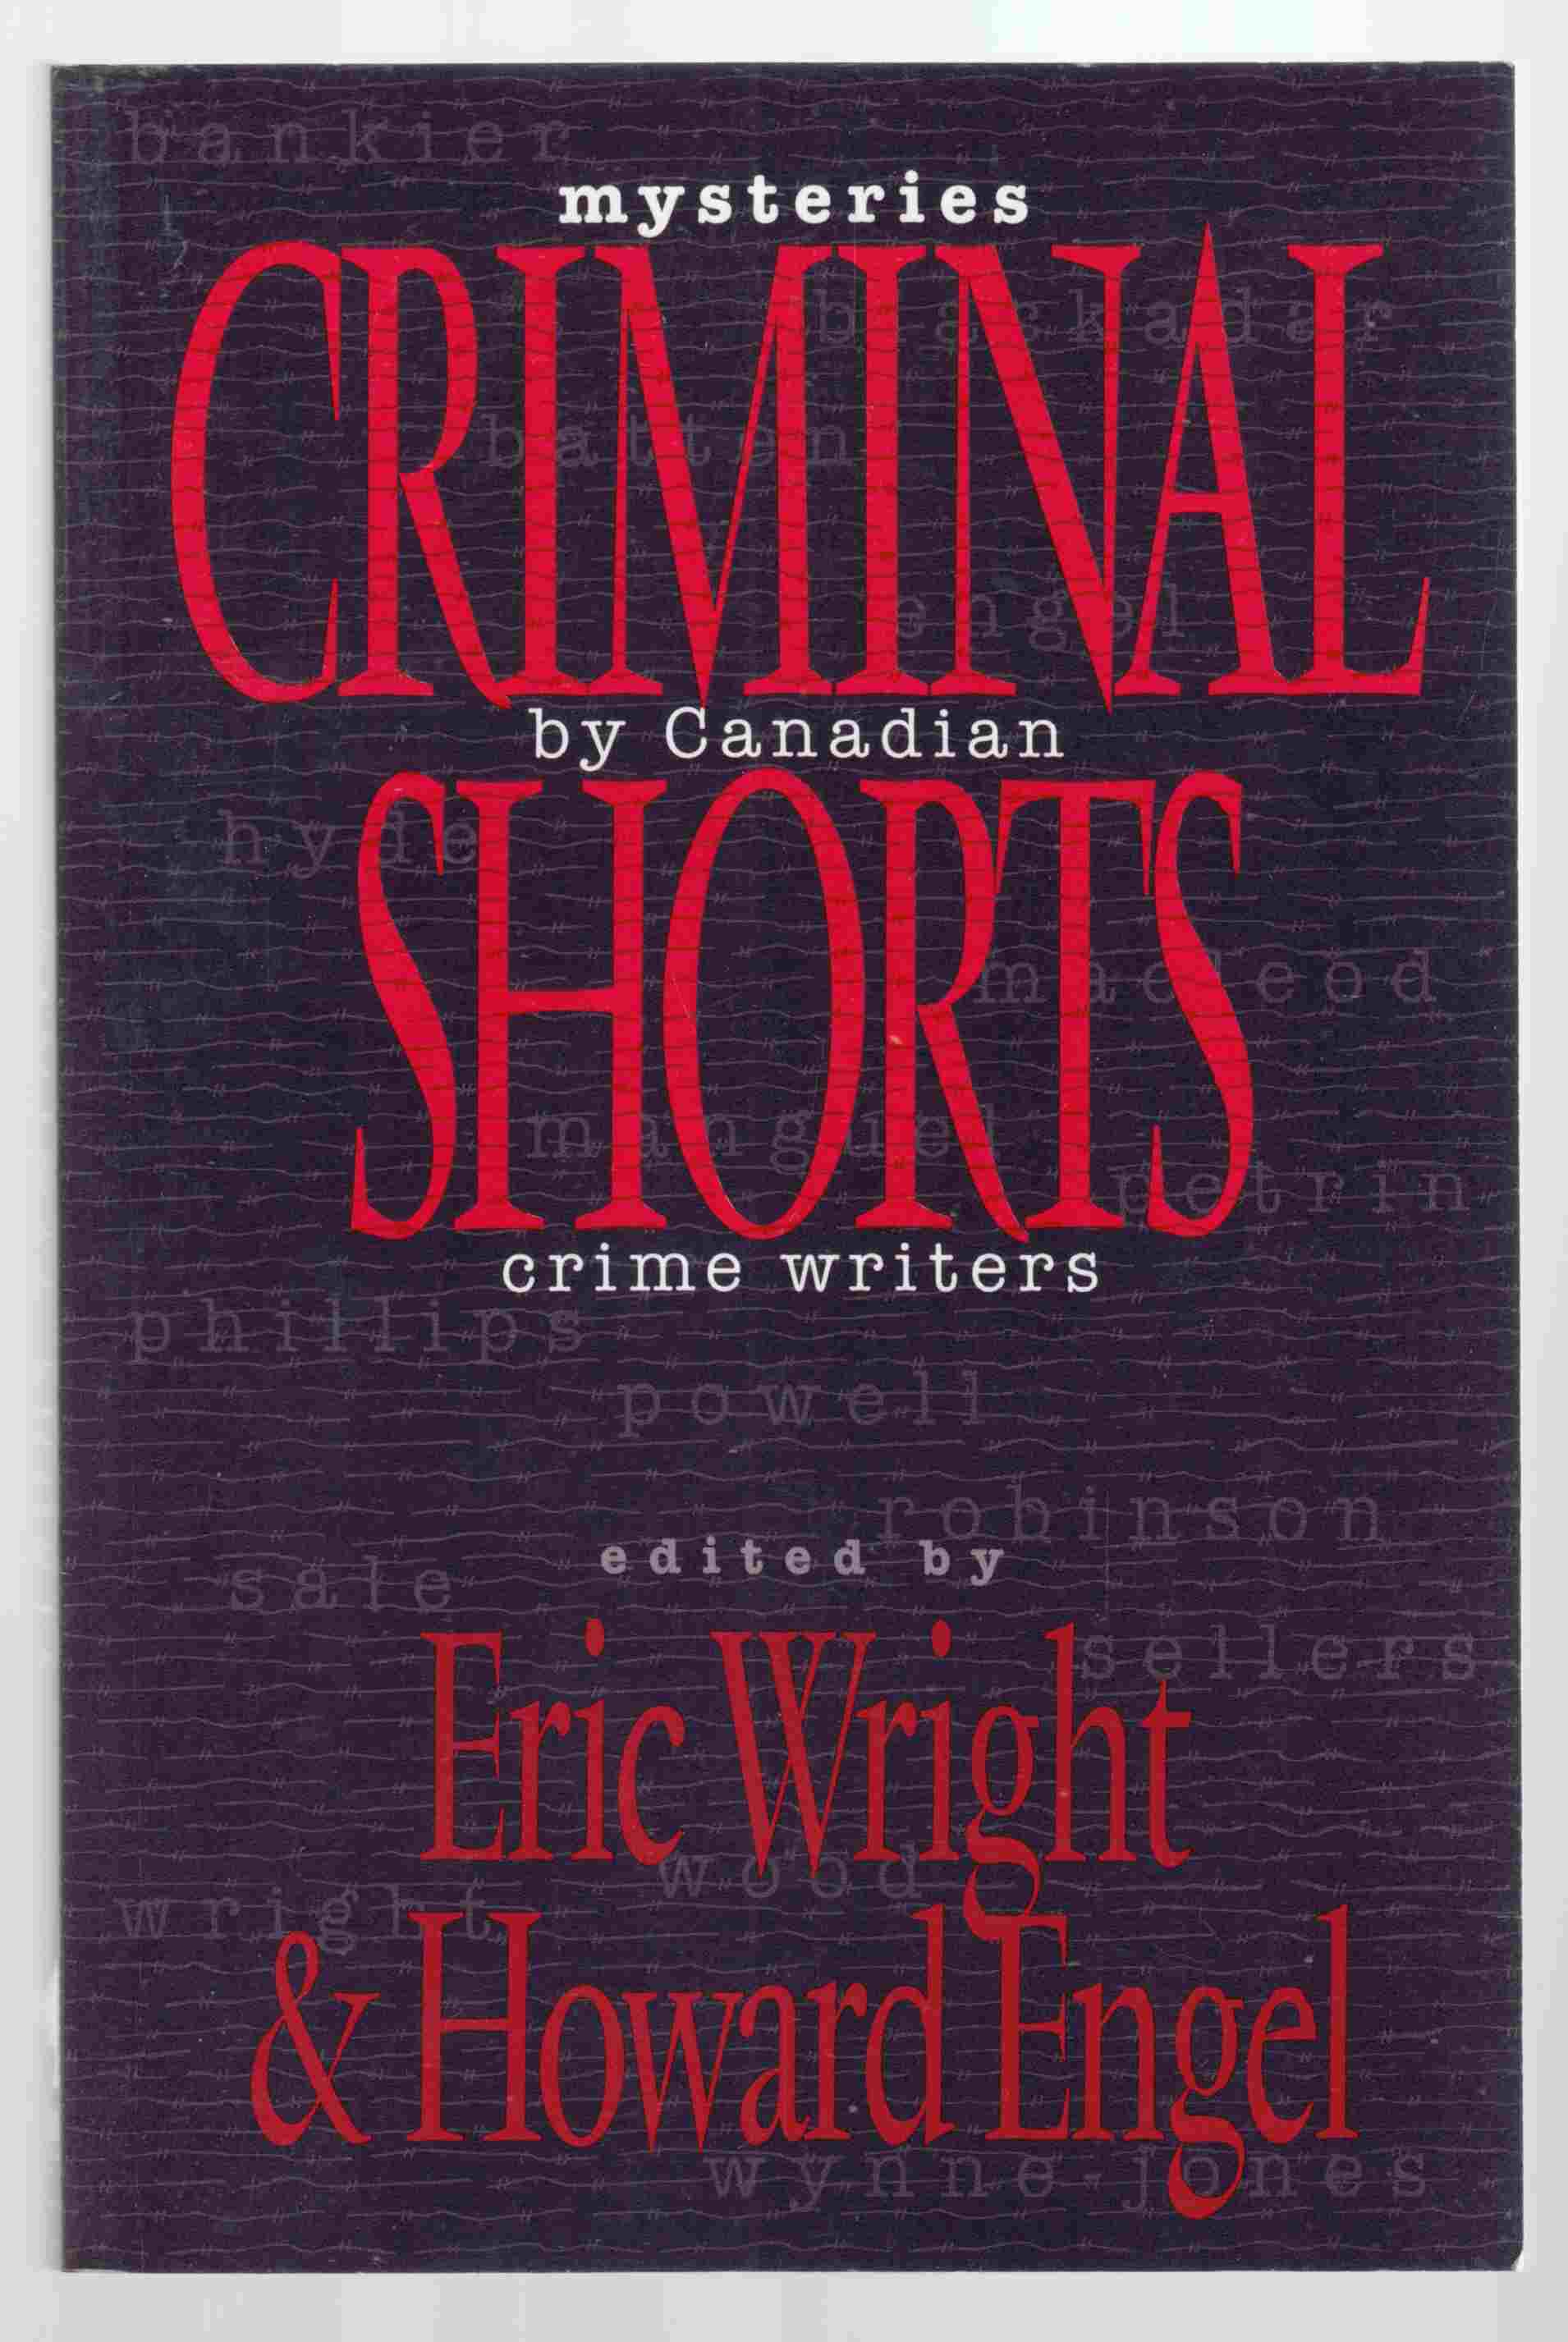 Image for Criminal Shorts Mysteries by Canadian Crime Writers